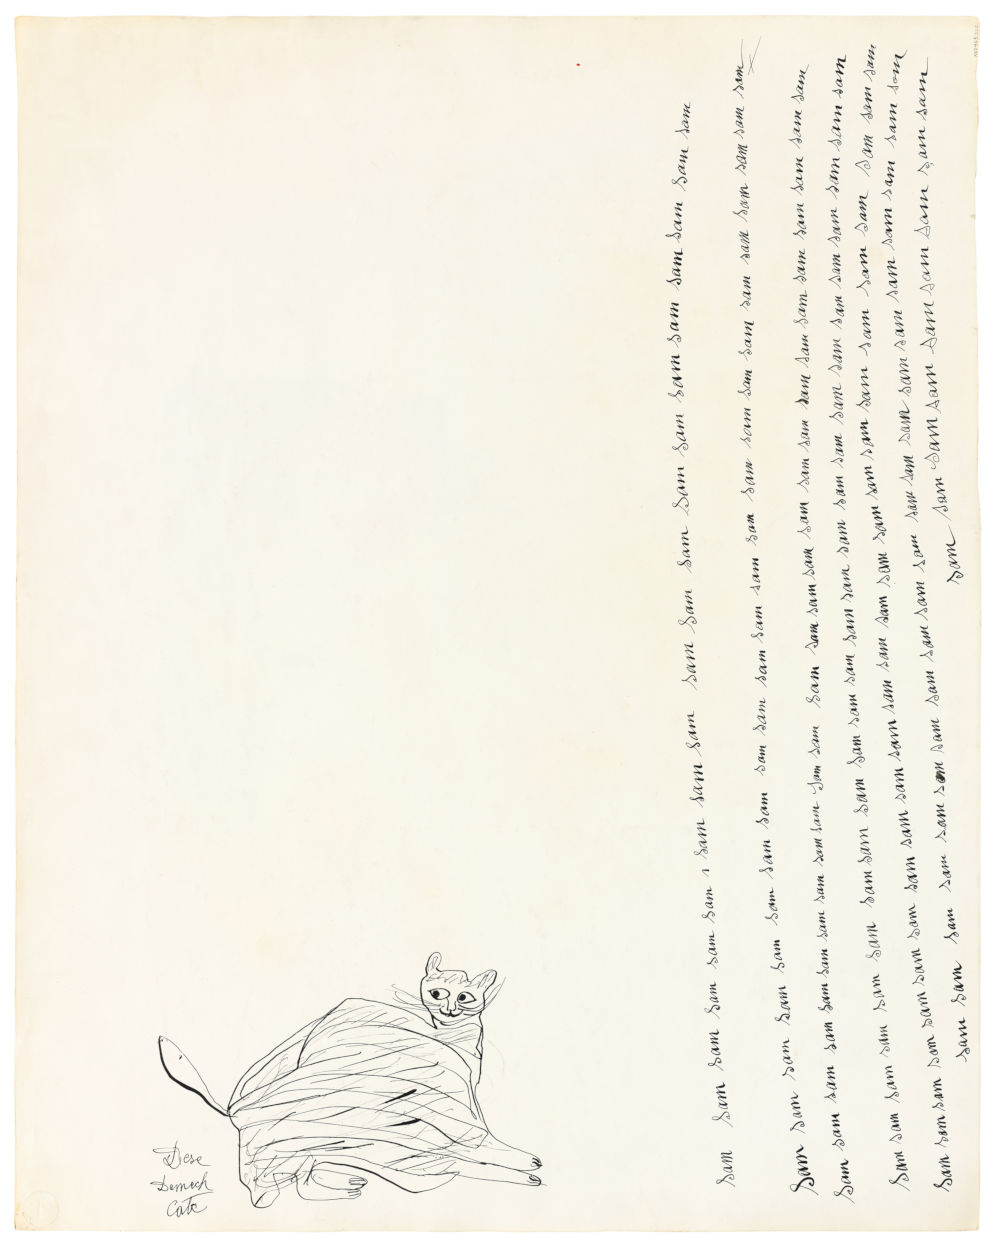 Untitled (Cats) (verso); Untitled (Rose) (recto)